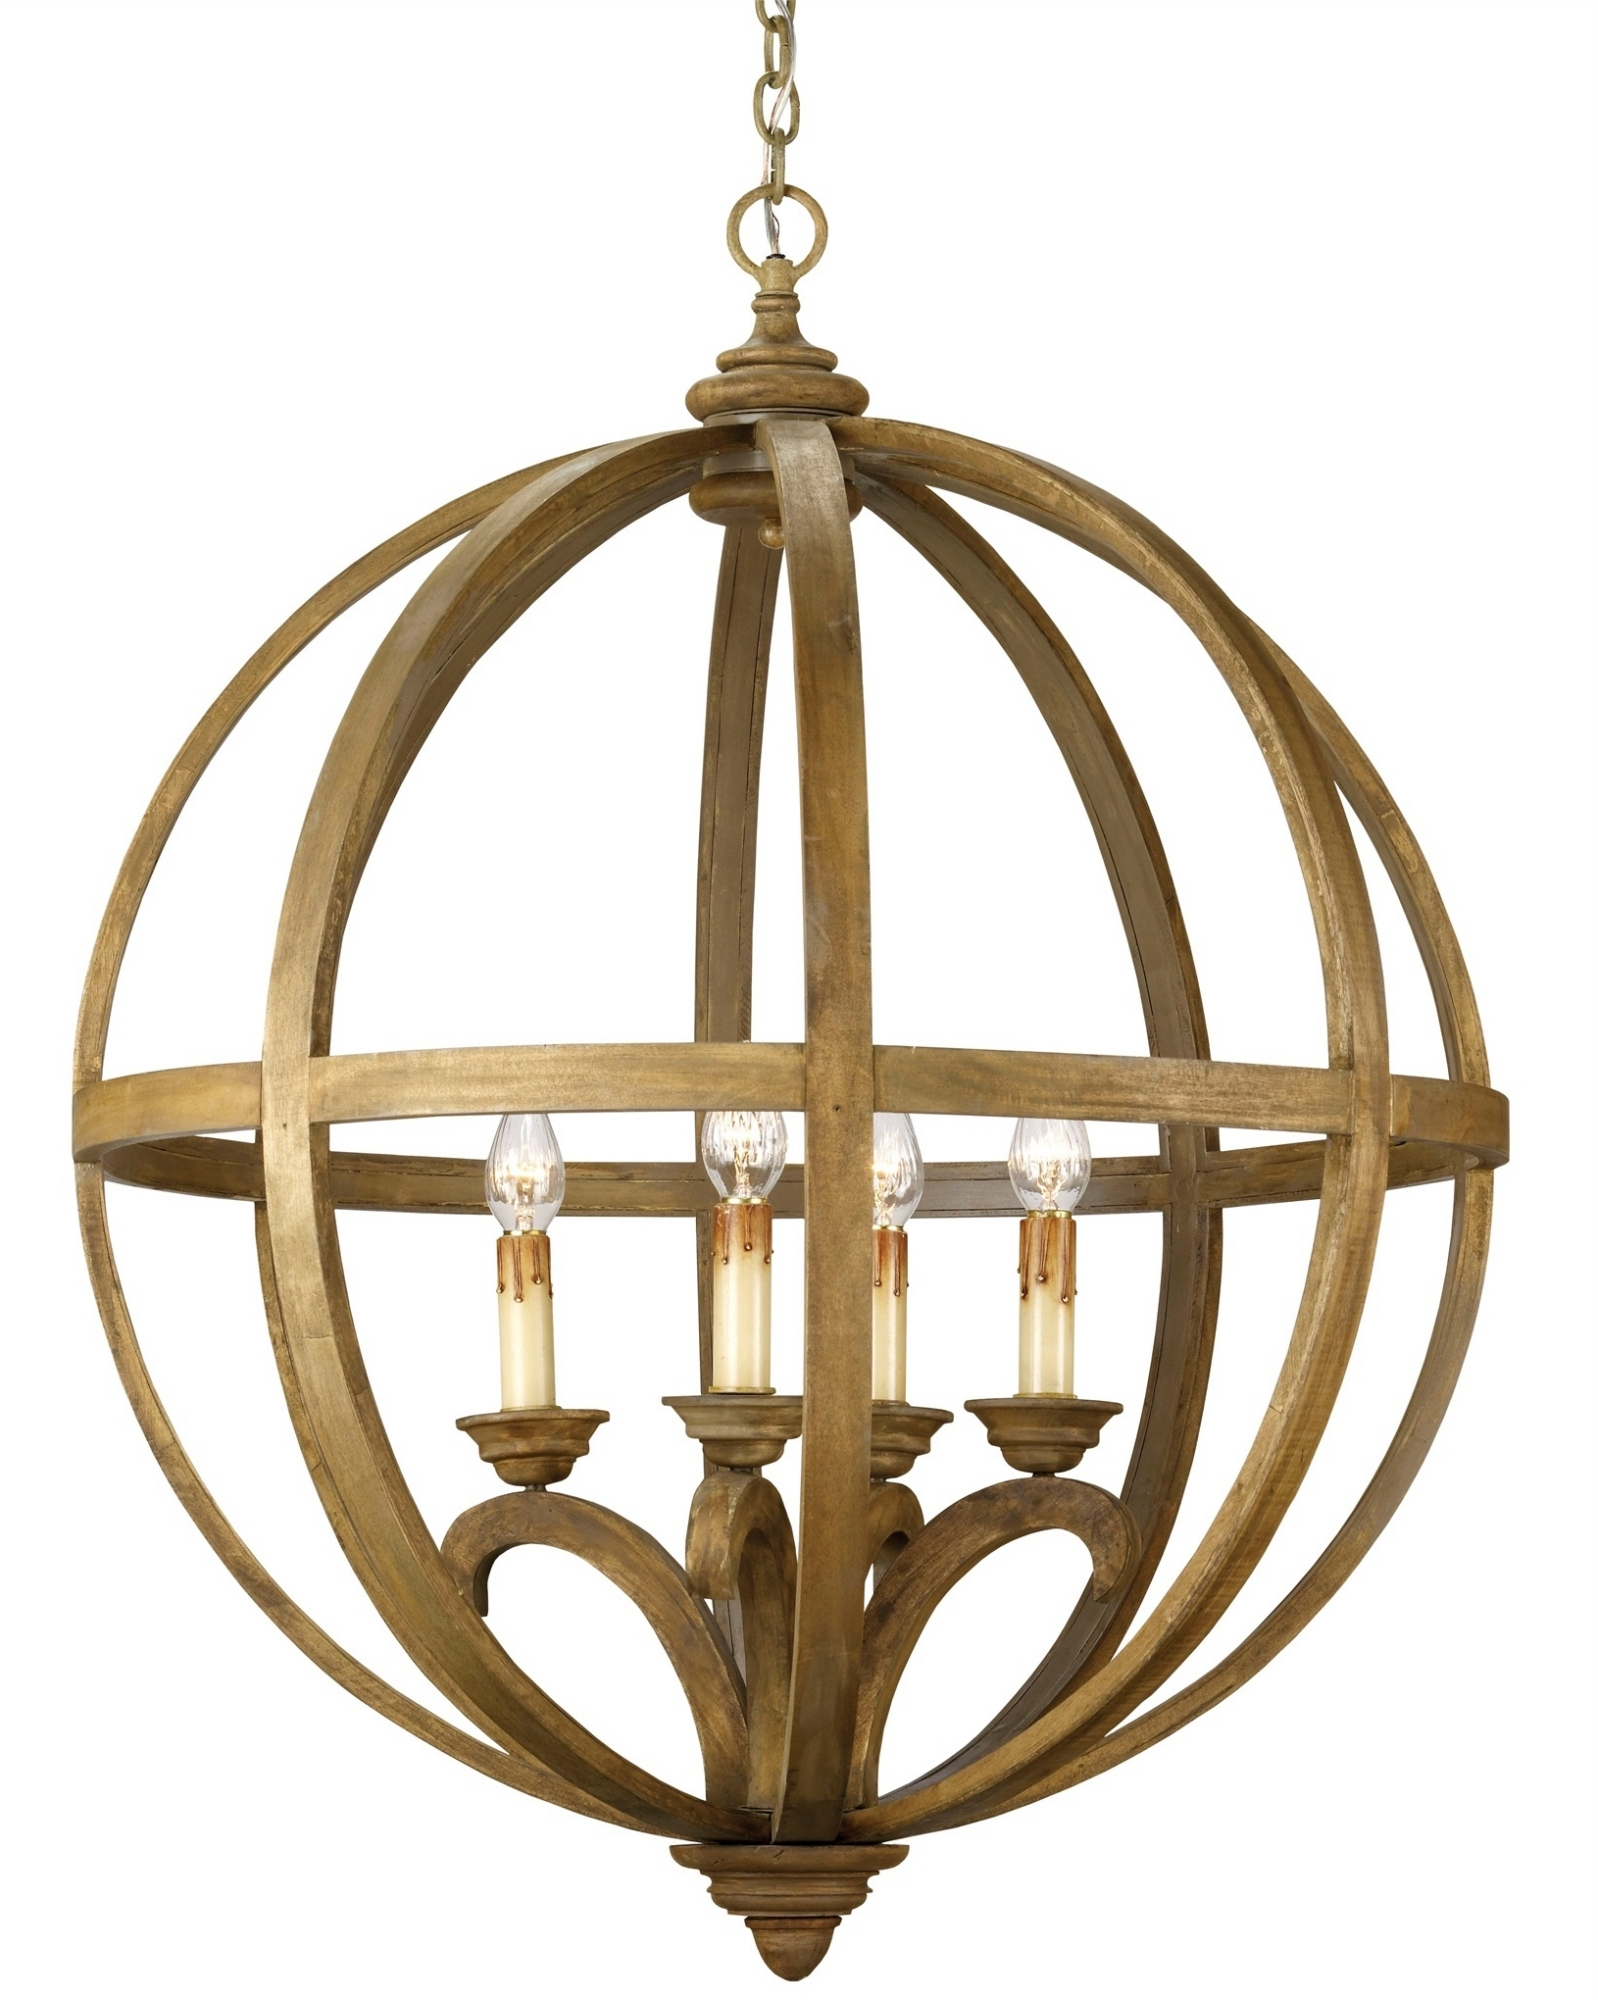 Orb Chandeliers With 2019 Axel Orb Chandelier Lighting (View 7 of 20)